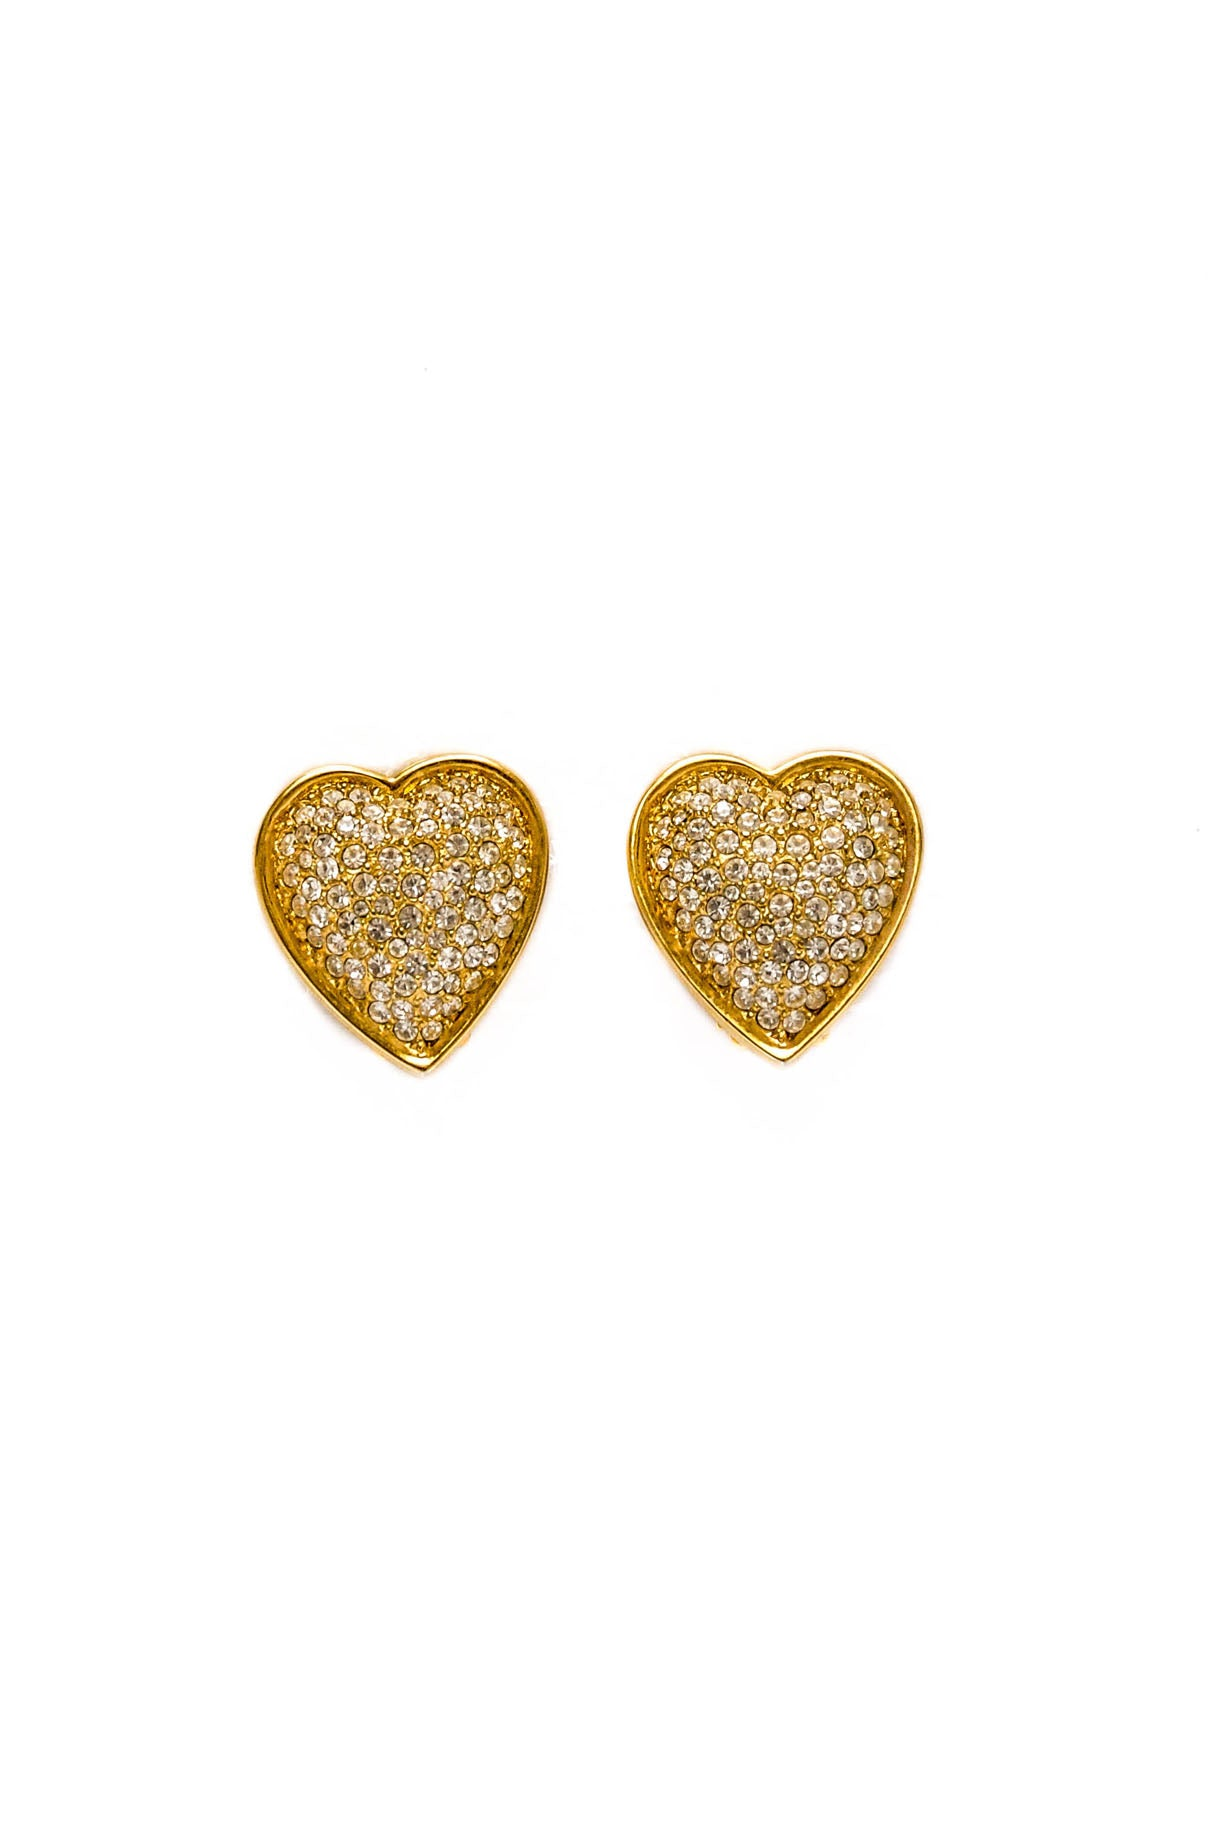 Vintage Carolee Rhinestone Heart Earrings from Sweet & Spark.